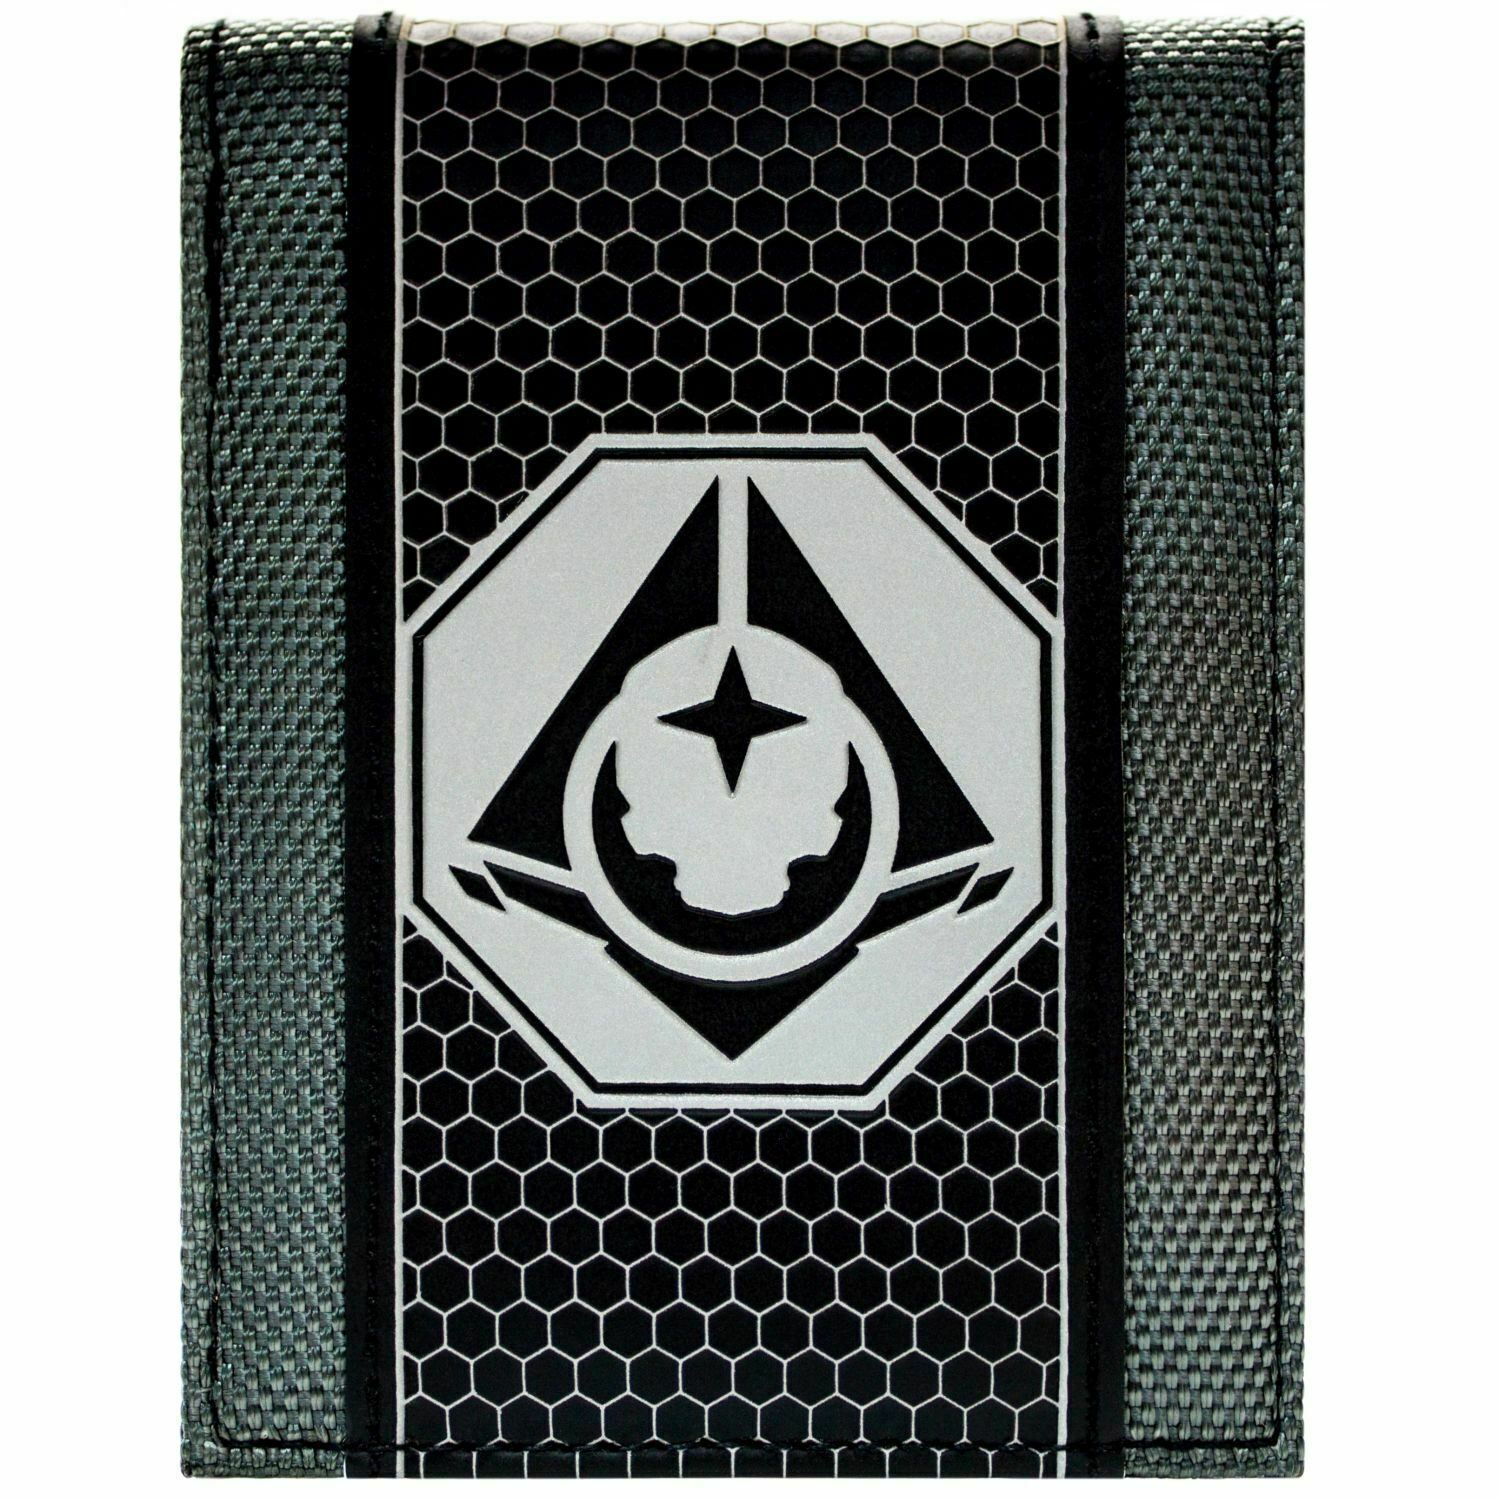 Official Microsoft Halo 5 Guardians Silver Id & Card Wallet *SECOND*